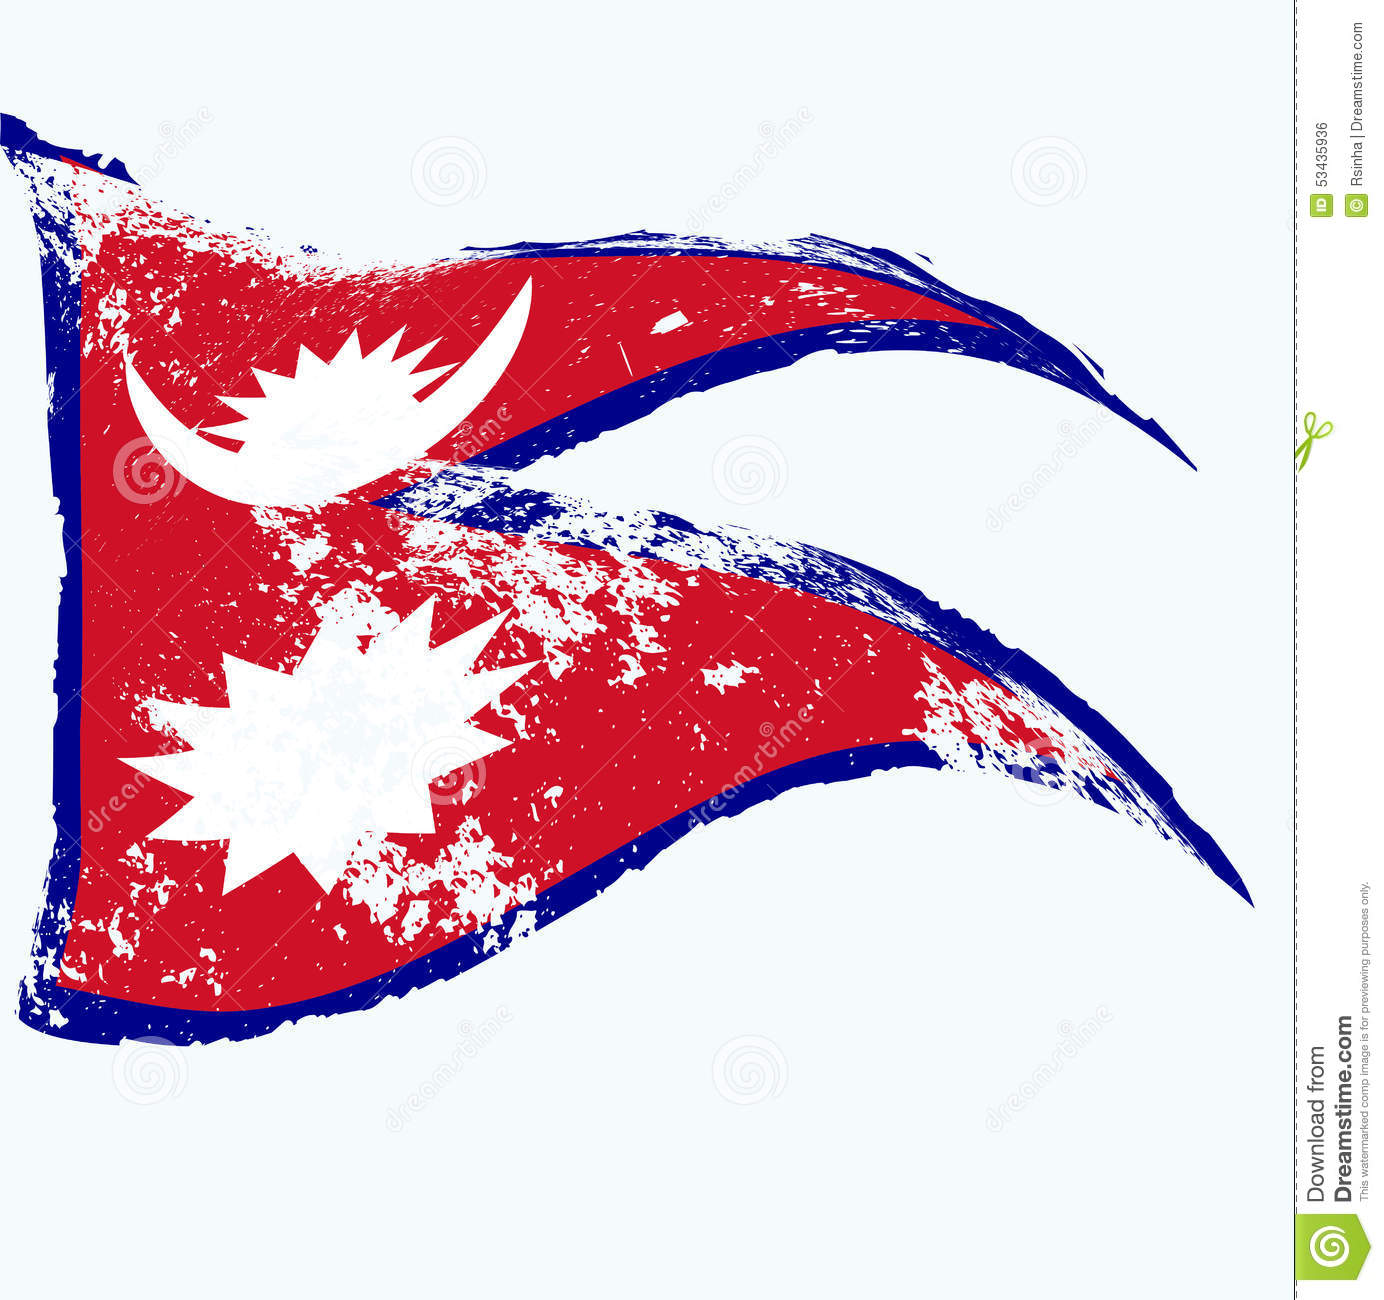 Nepal flag stock vector. Illustration of colors, background - 53435936